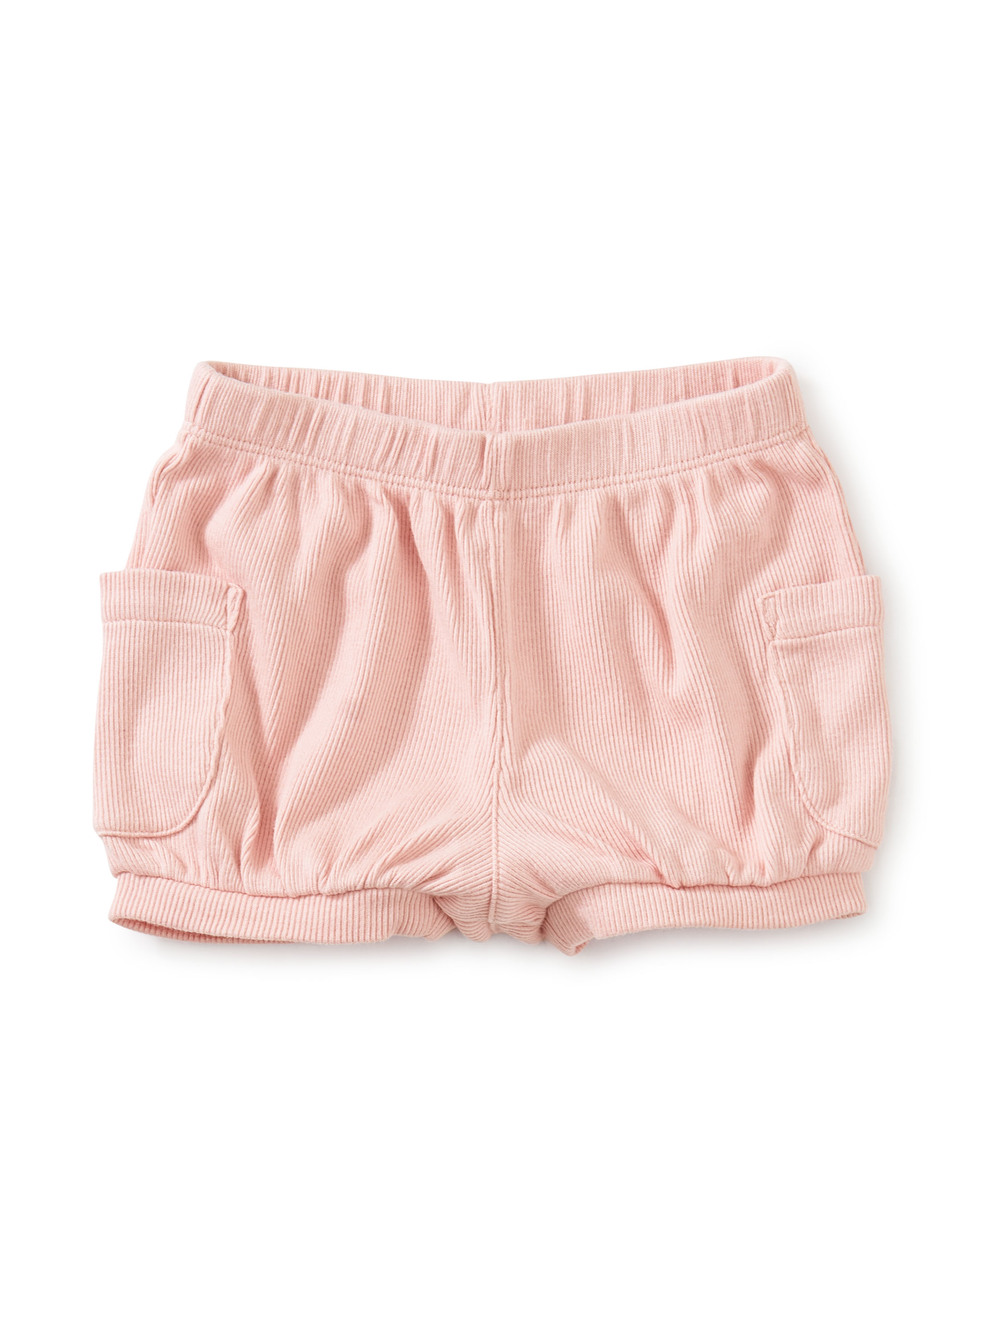 Easy Pocket Baby Shorts